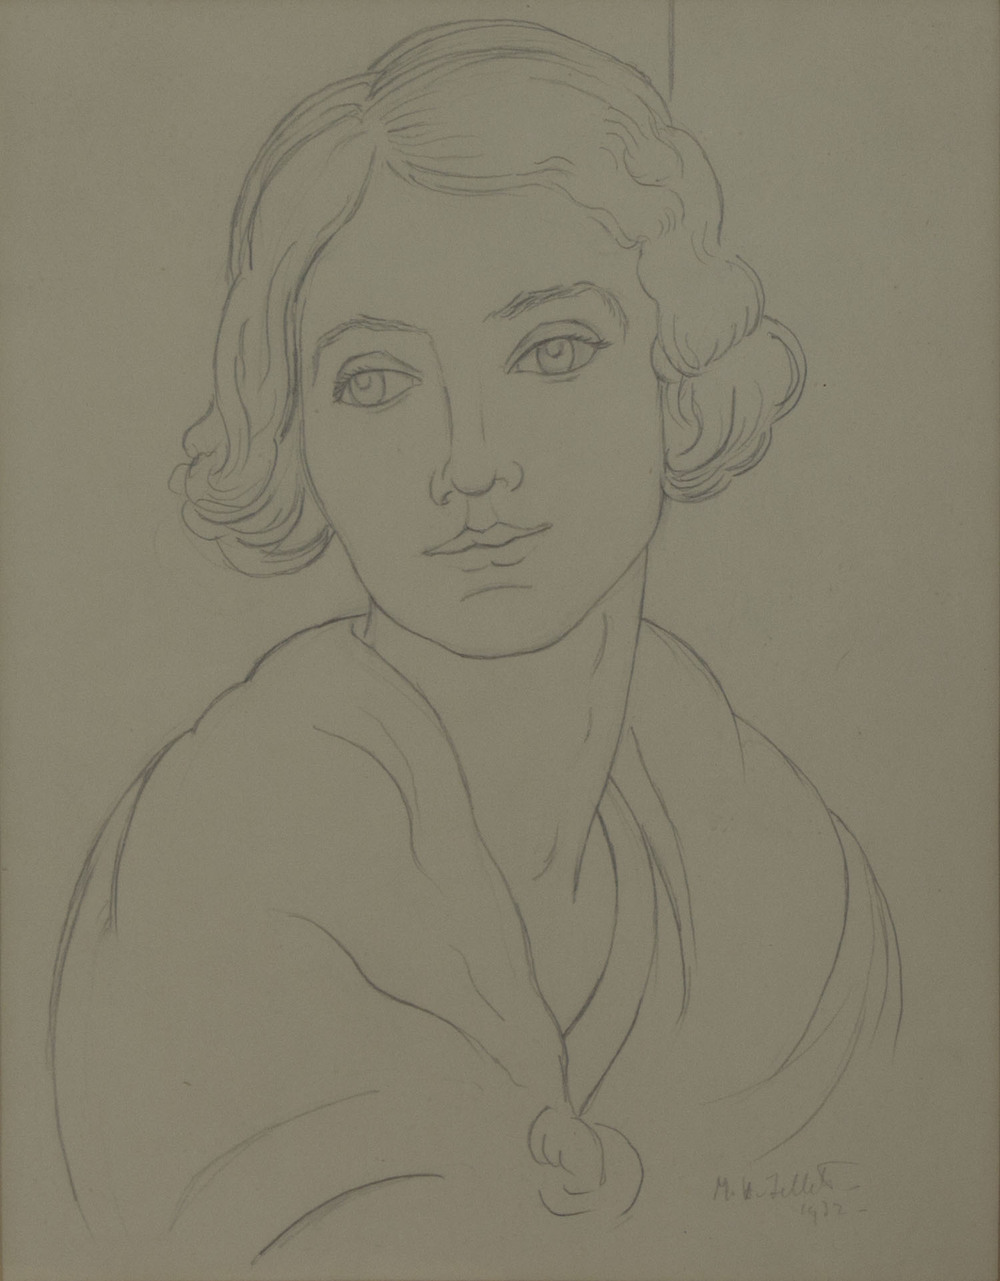 Mainie Jellett 'Head Of A Girl' 1932 pencil drawing on paper 29x23cm.jpg